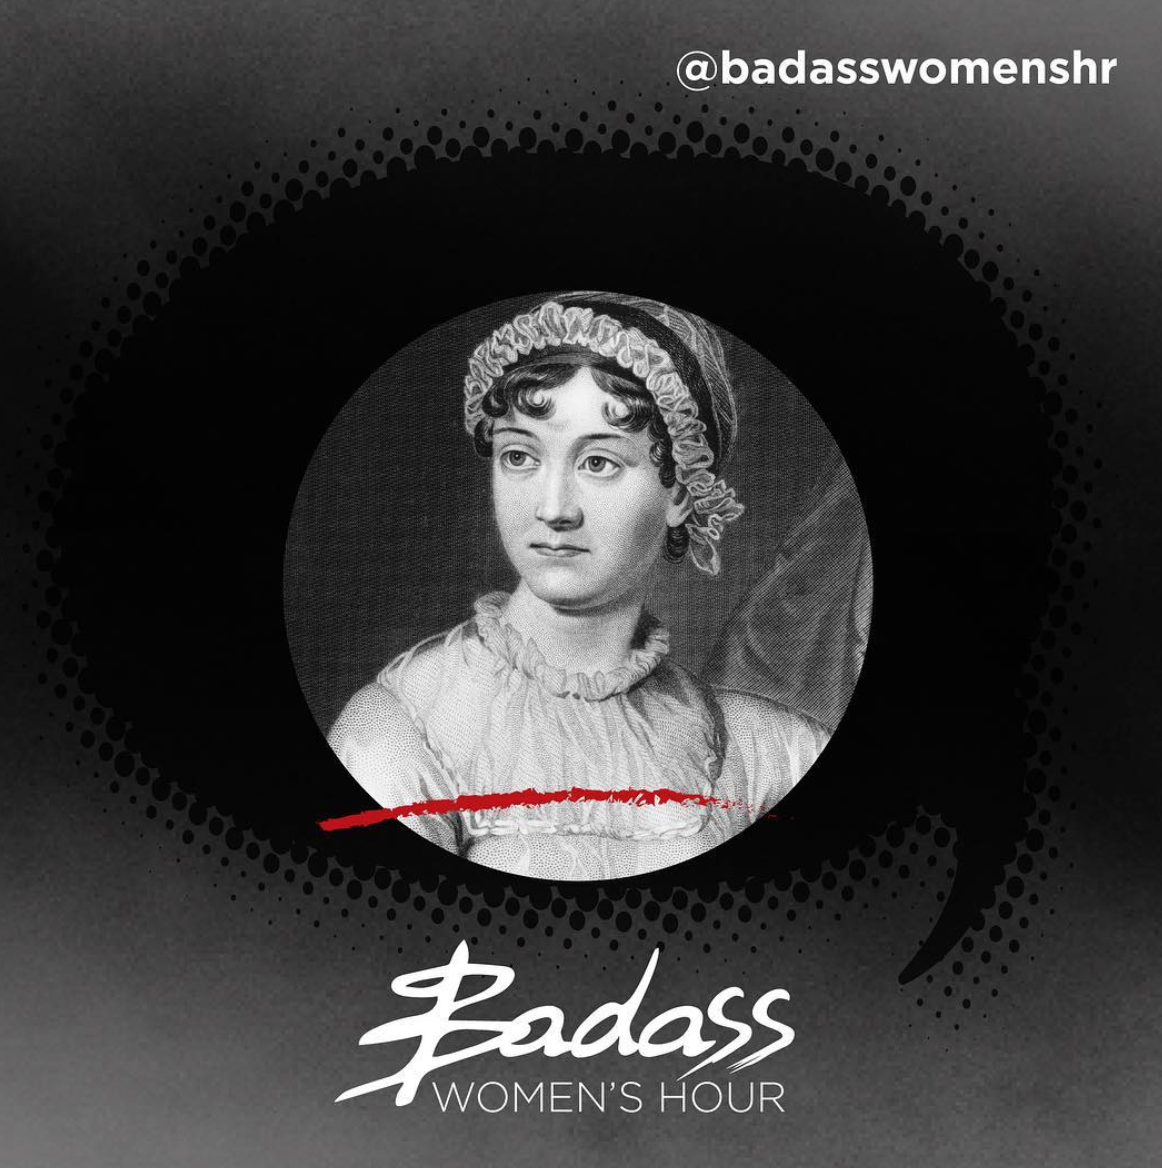 badass women's hour - Kate Leaver is a guest on TalkRadio's Badass Women's Hour, talking to hosts Harriet Minter, Natalie Campbell and Emma Sexton about why Jane Austen is an historical badass (around the 38 minute mark).